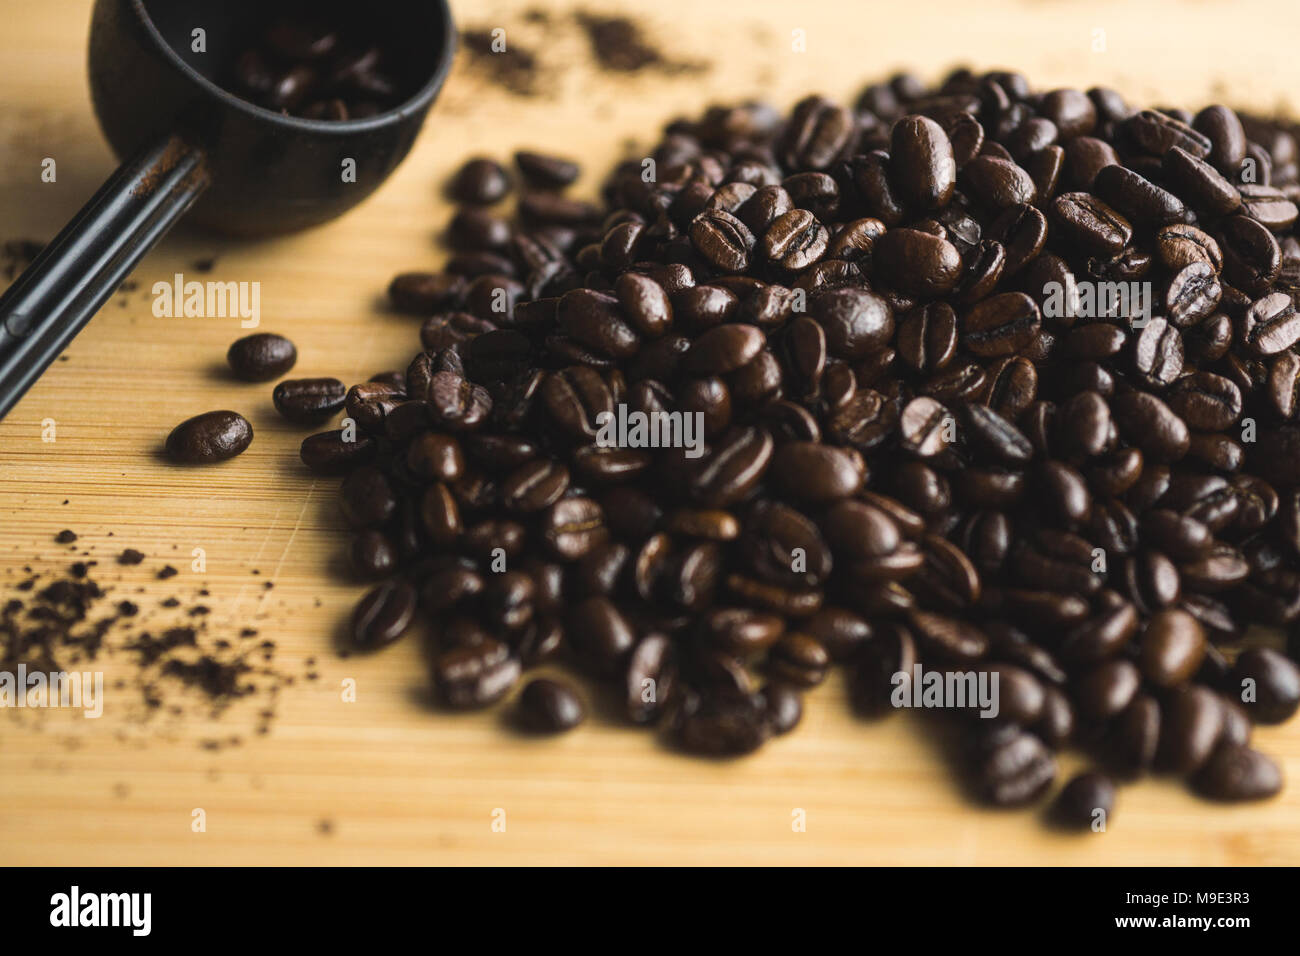 Measuring spoon and spilled coffee beans on wooden board. - Stock Image